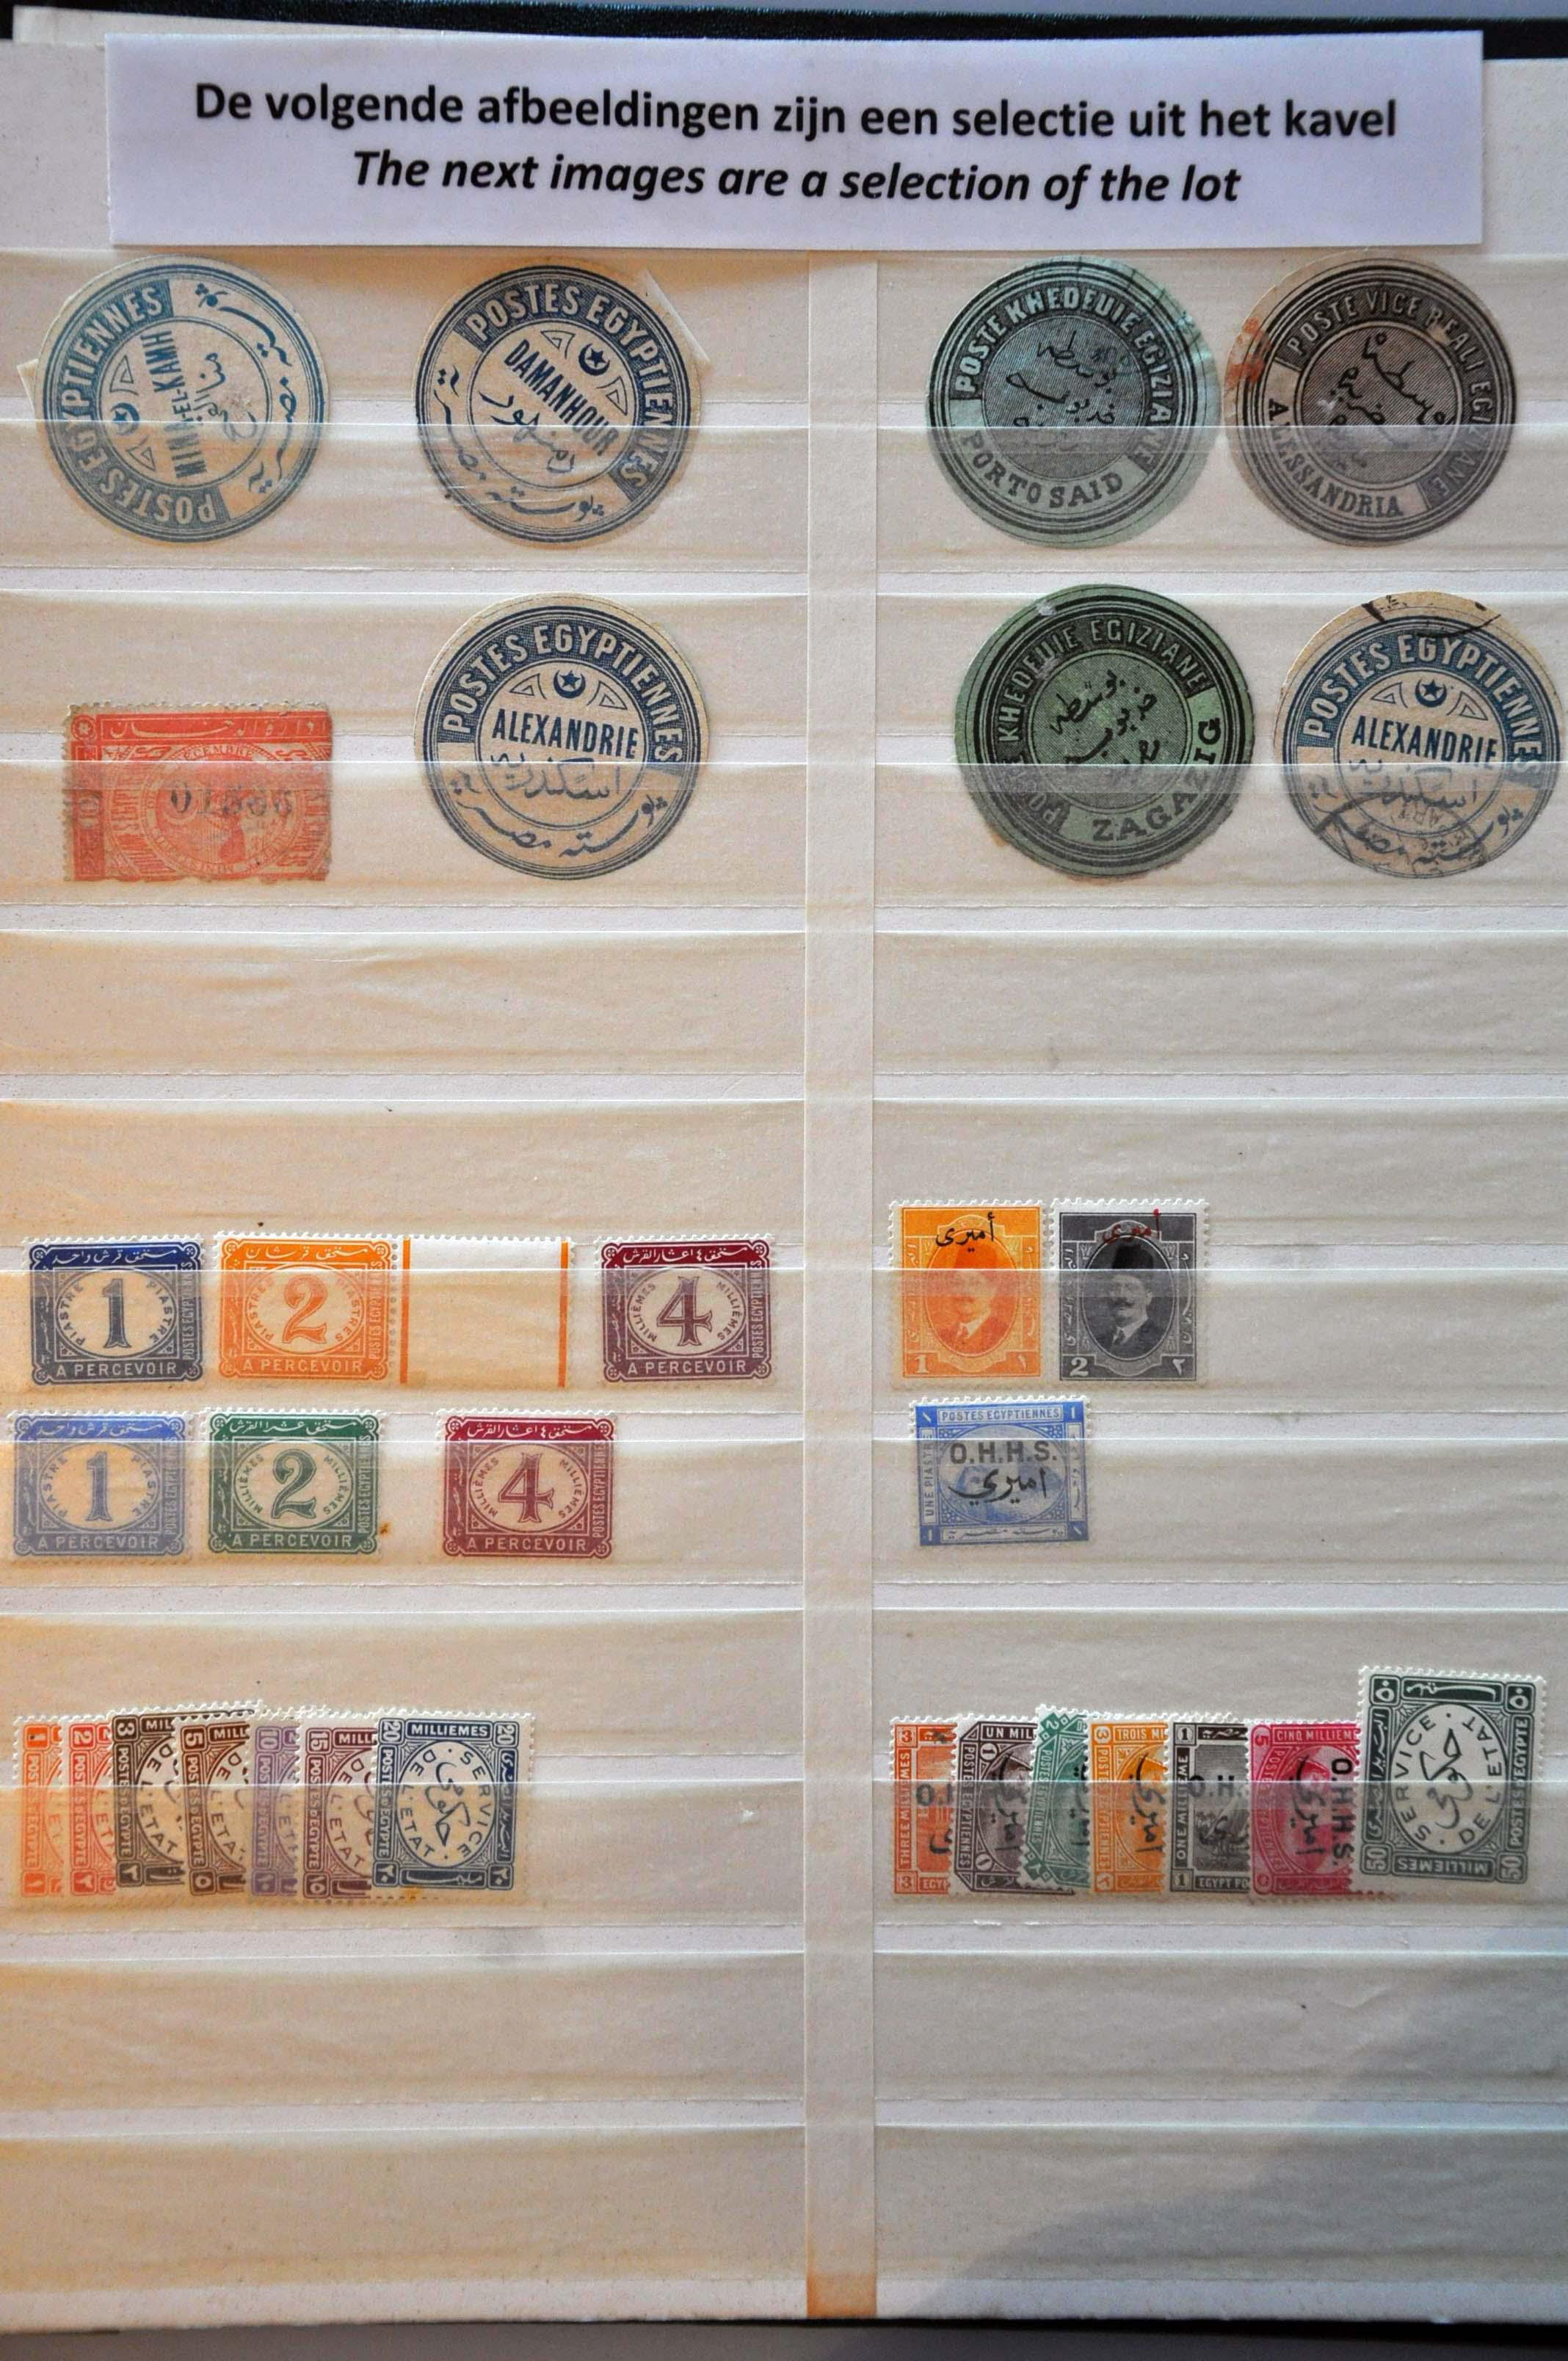 Lot 513 - Outside Europa Egypt -  Corinphila Veilingen Auction 244 -Netherlands and former colonies, WW2 Postal History, Bosnia, German and British colonies, Egypt. - Day 1